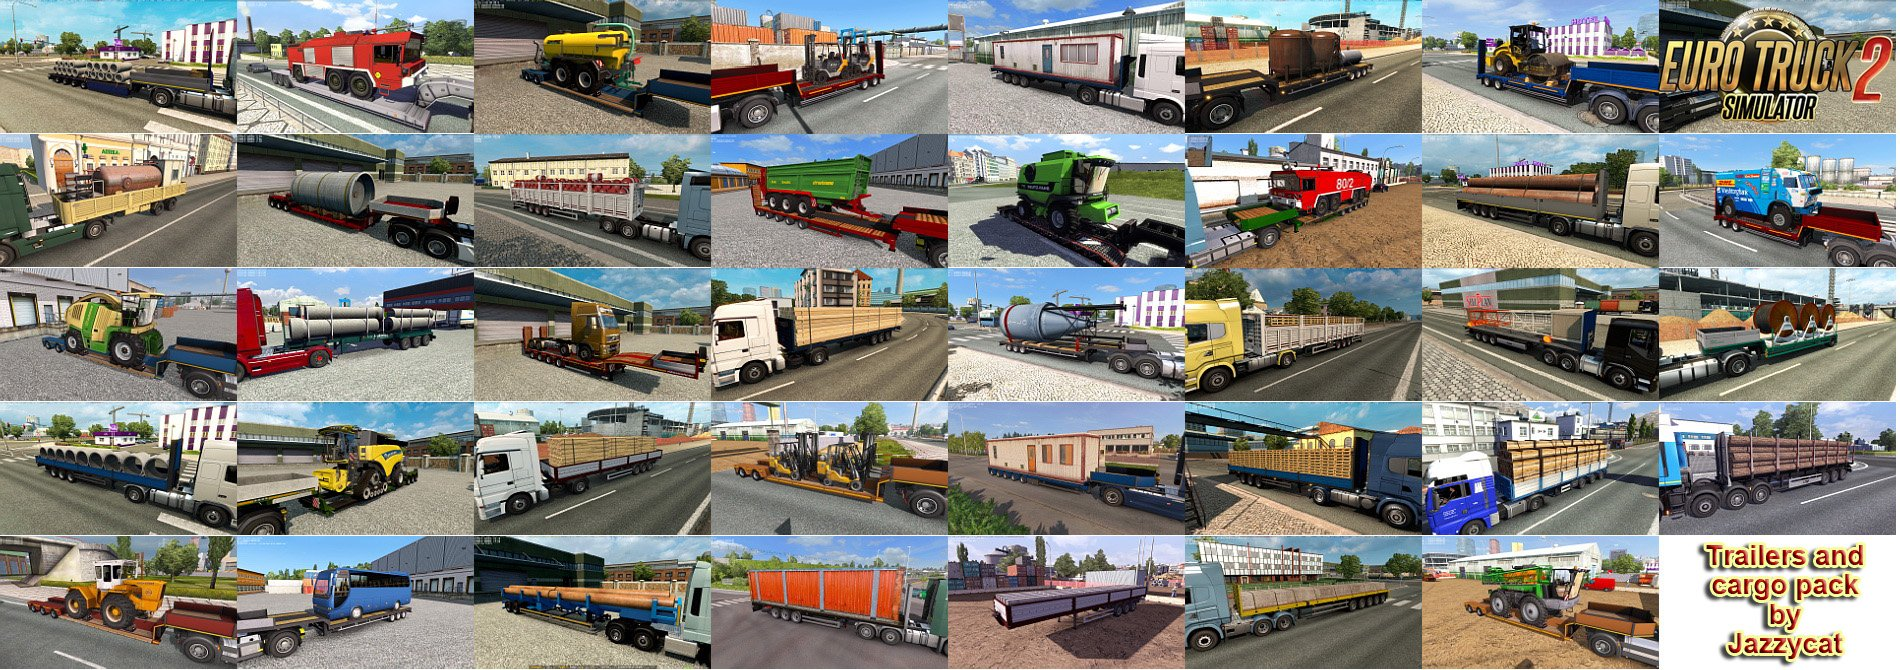 Trailers and Cargo Pack v7.6 by Jazzycat